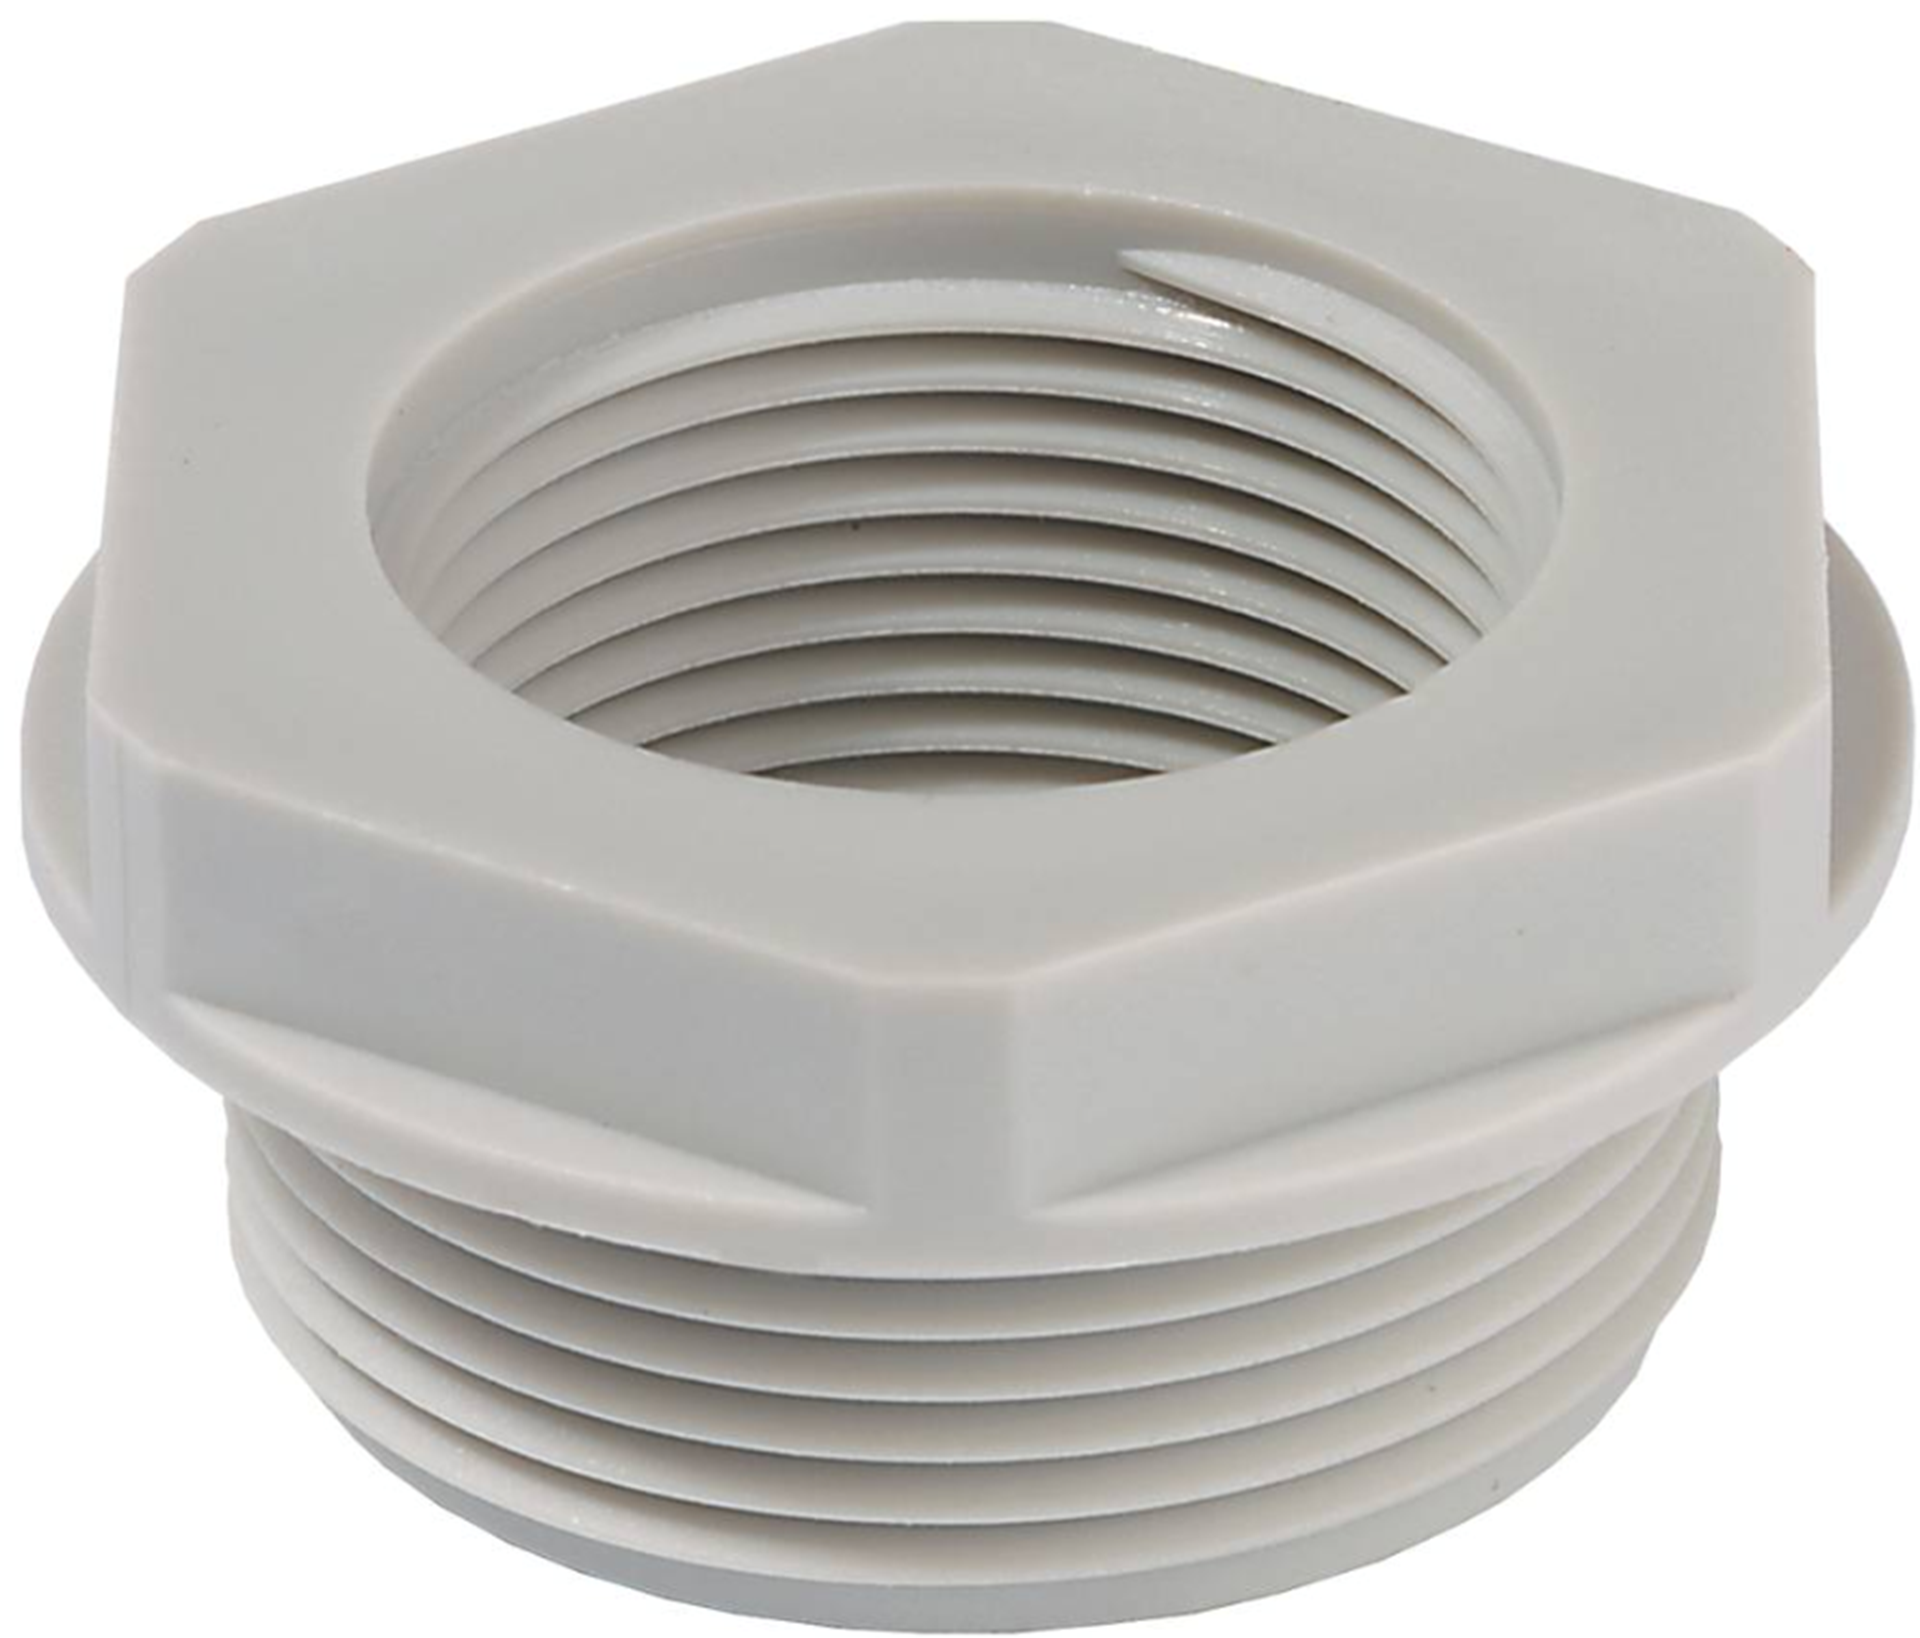 Wiska KRM 16/12 Reduction Adapter LG 10063577